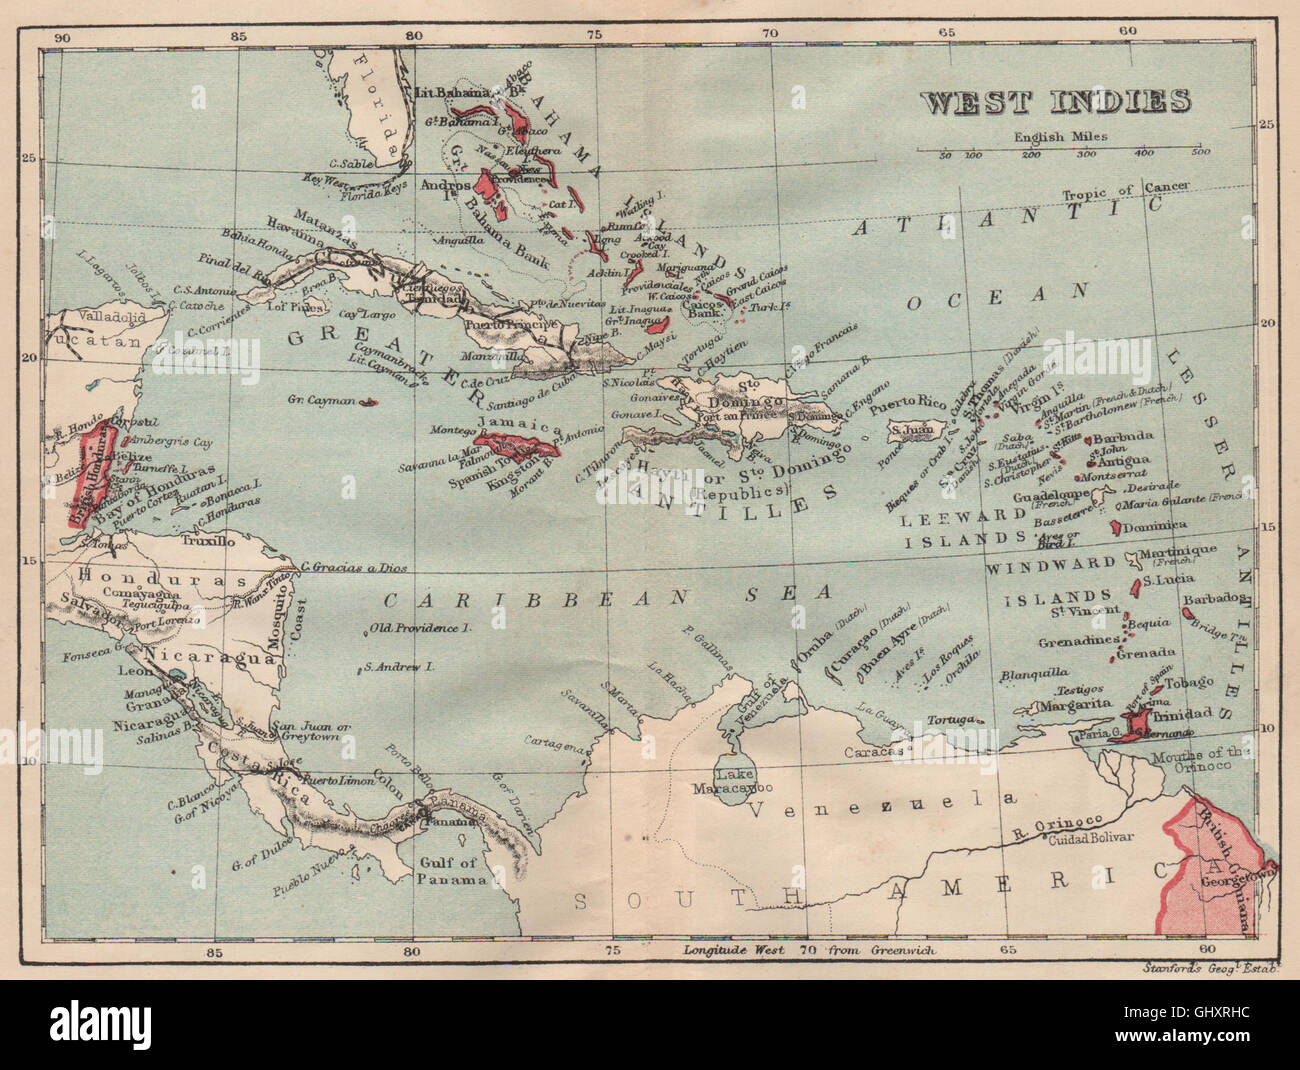 West Indies Islands On Map